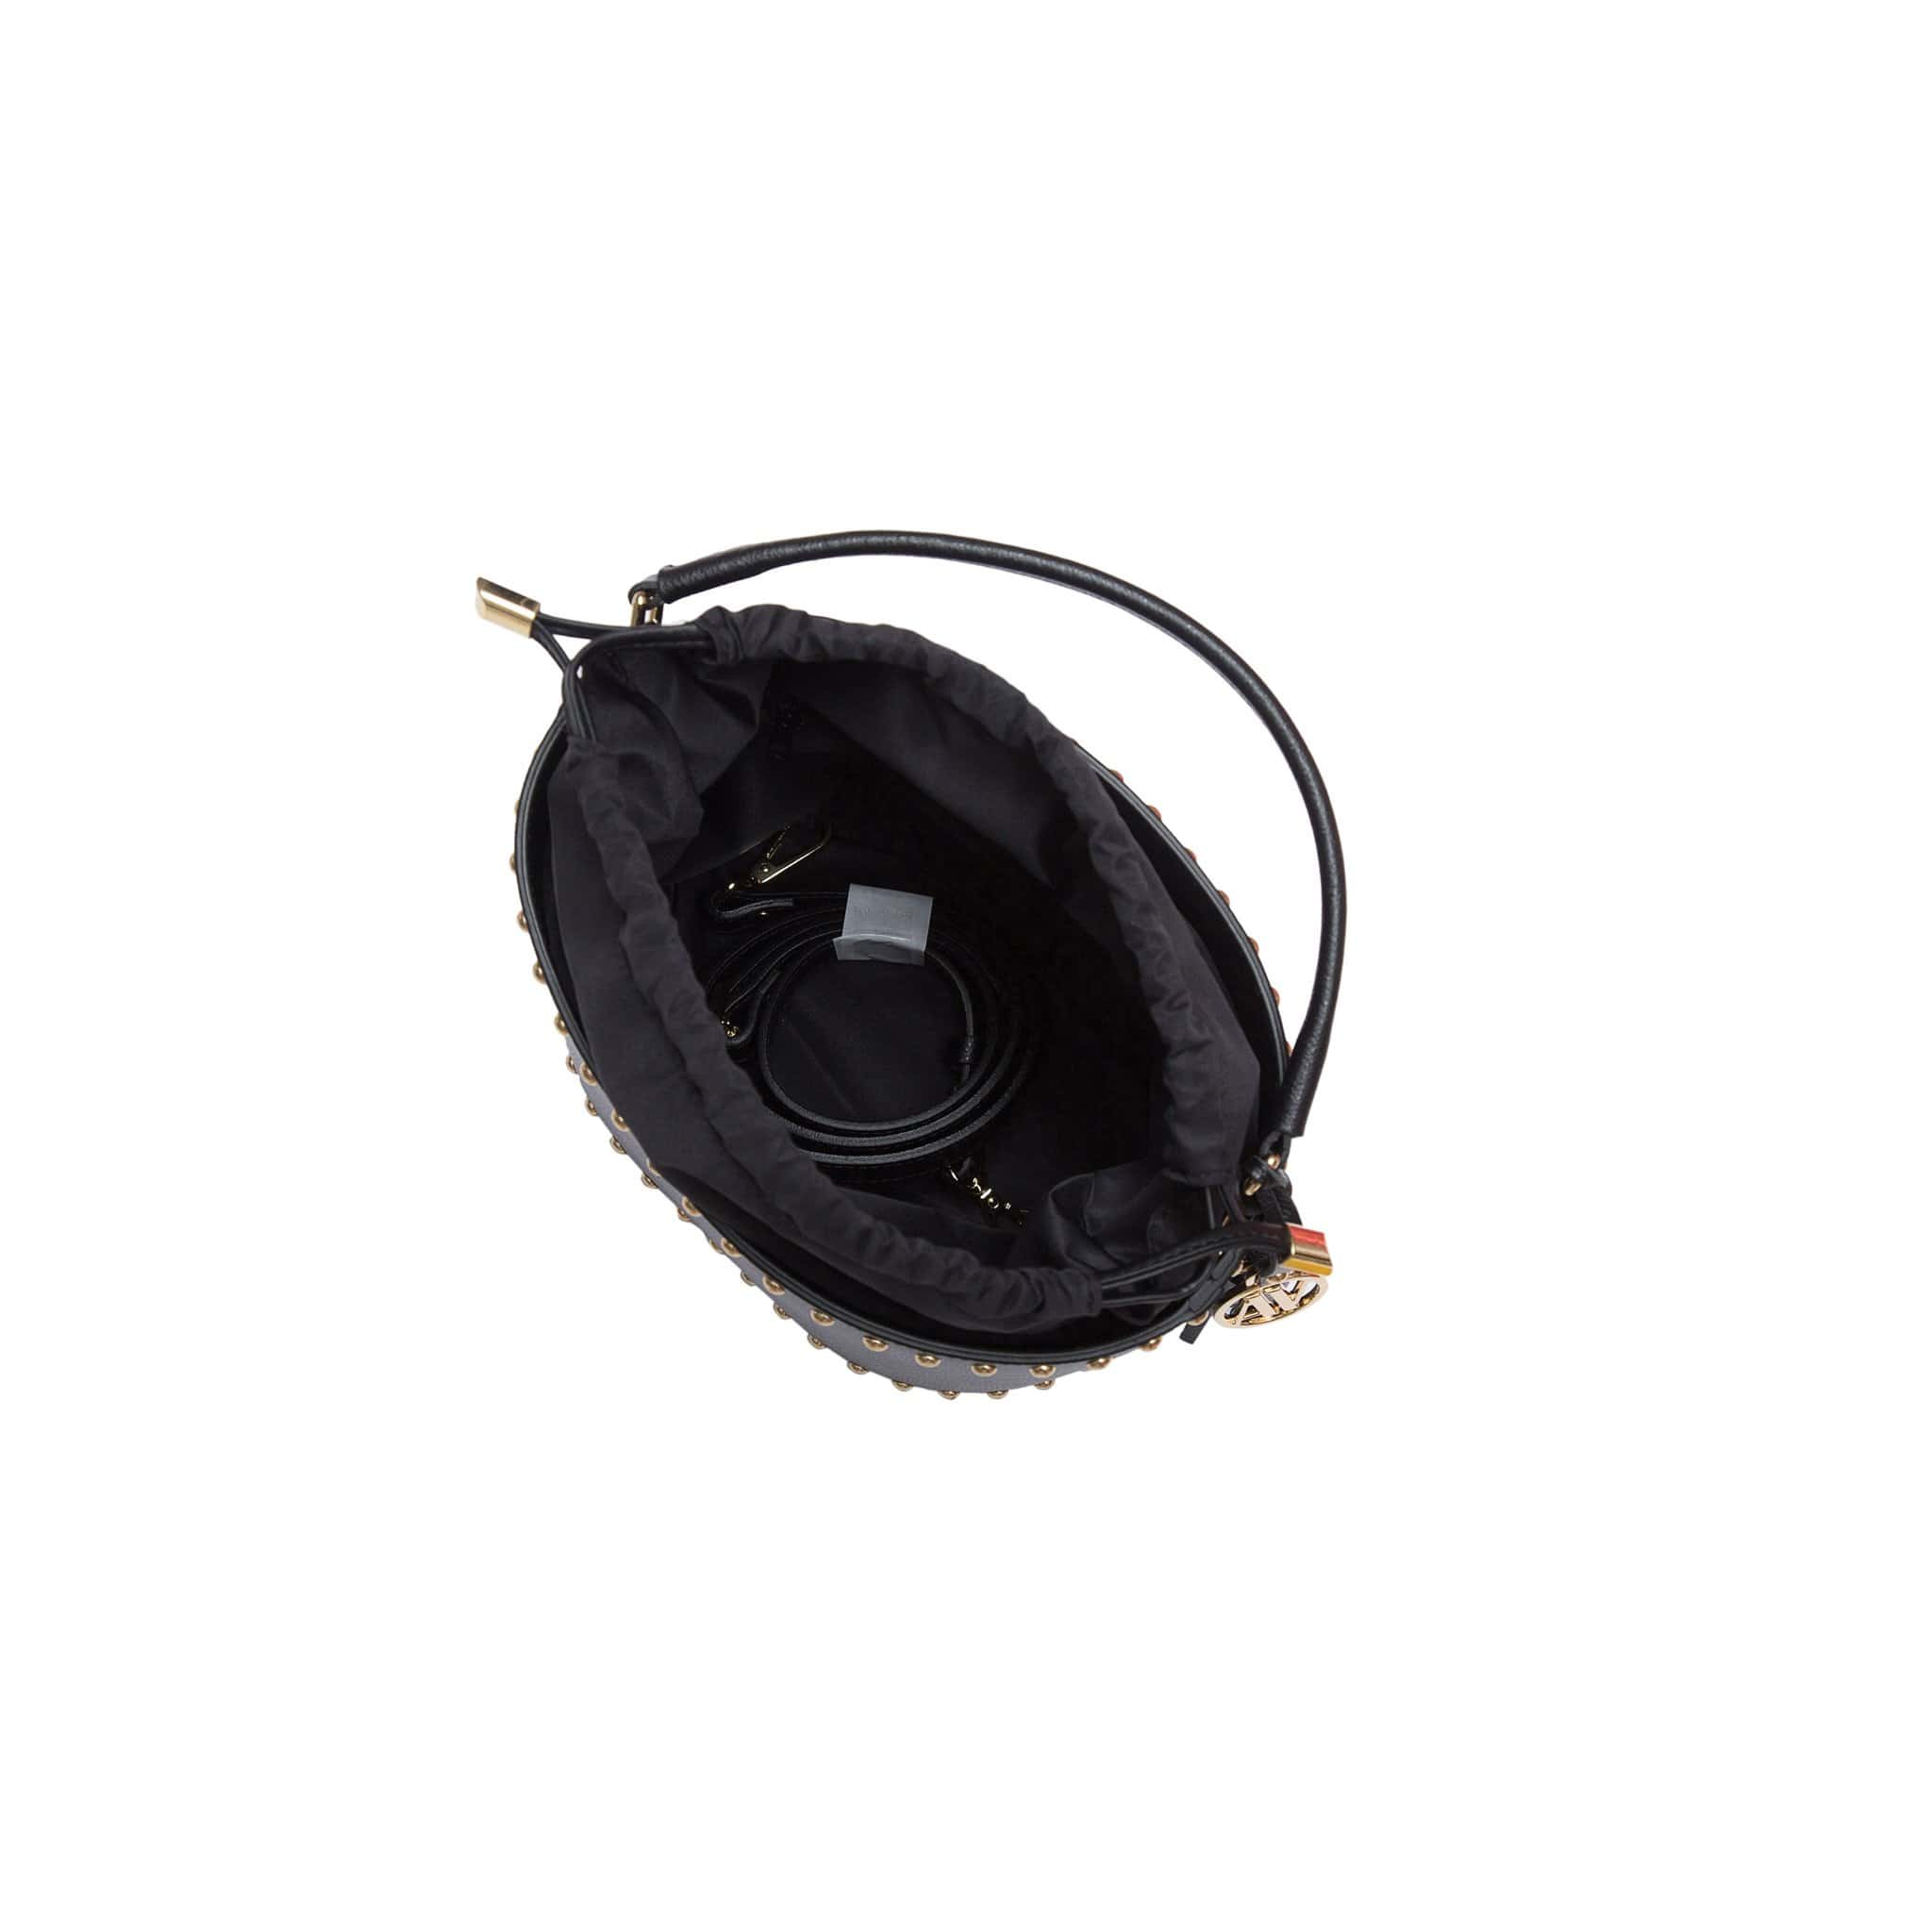 Nicole West Leather Bucket Bag - Black